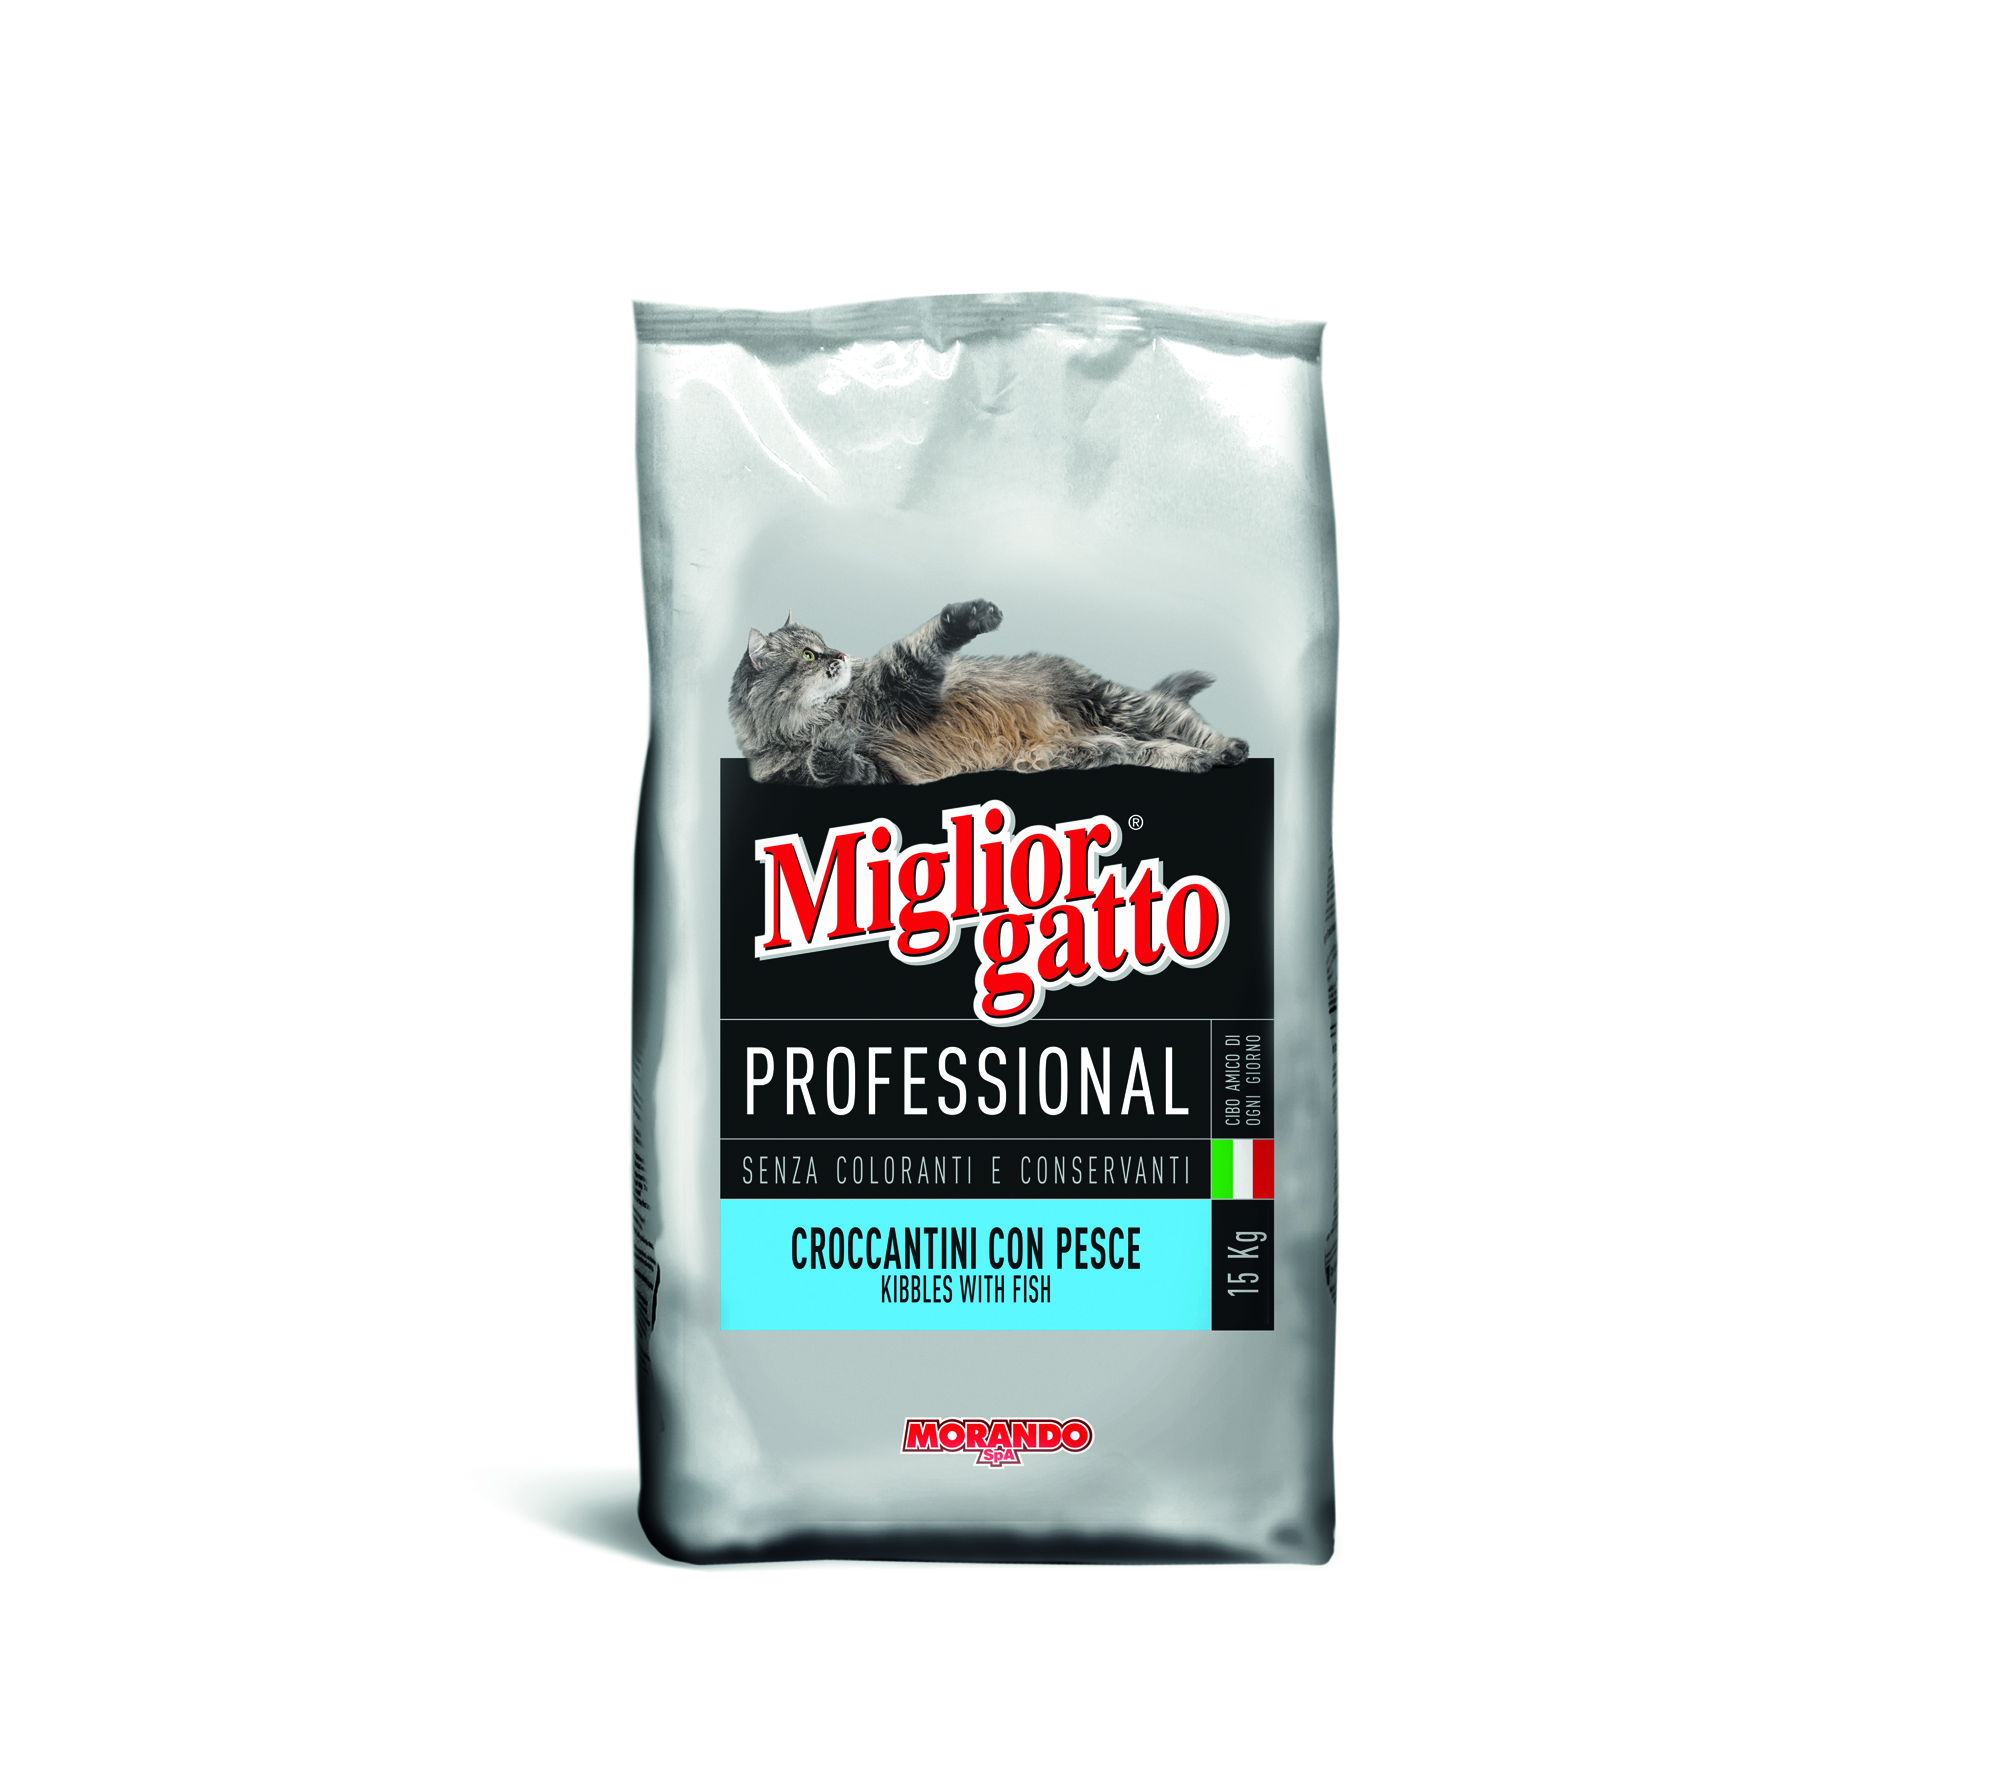 6.  miglior gatto professional croquettes with fish   15 %d0%ba%d0%b3